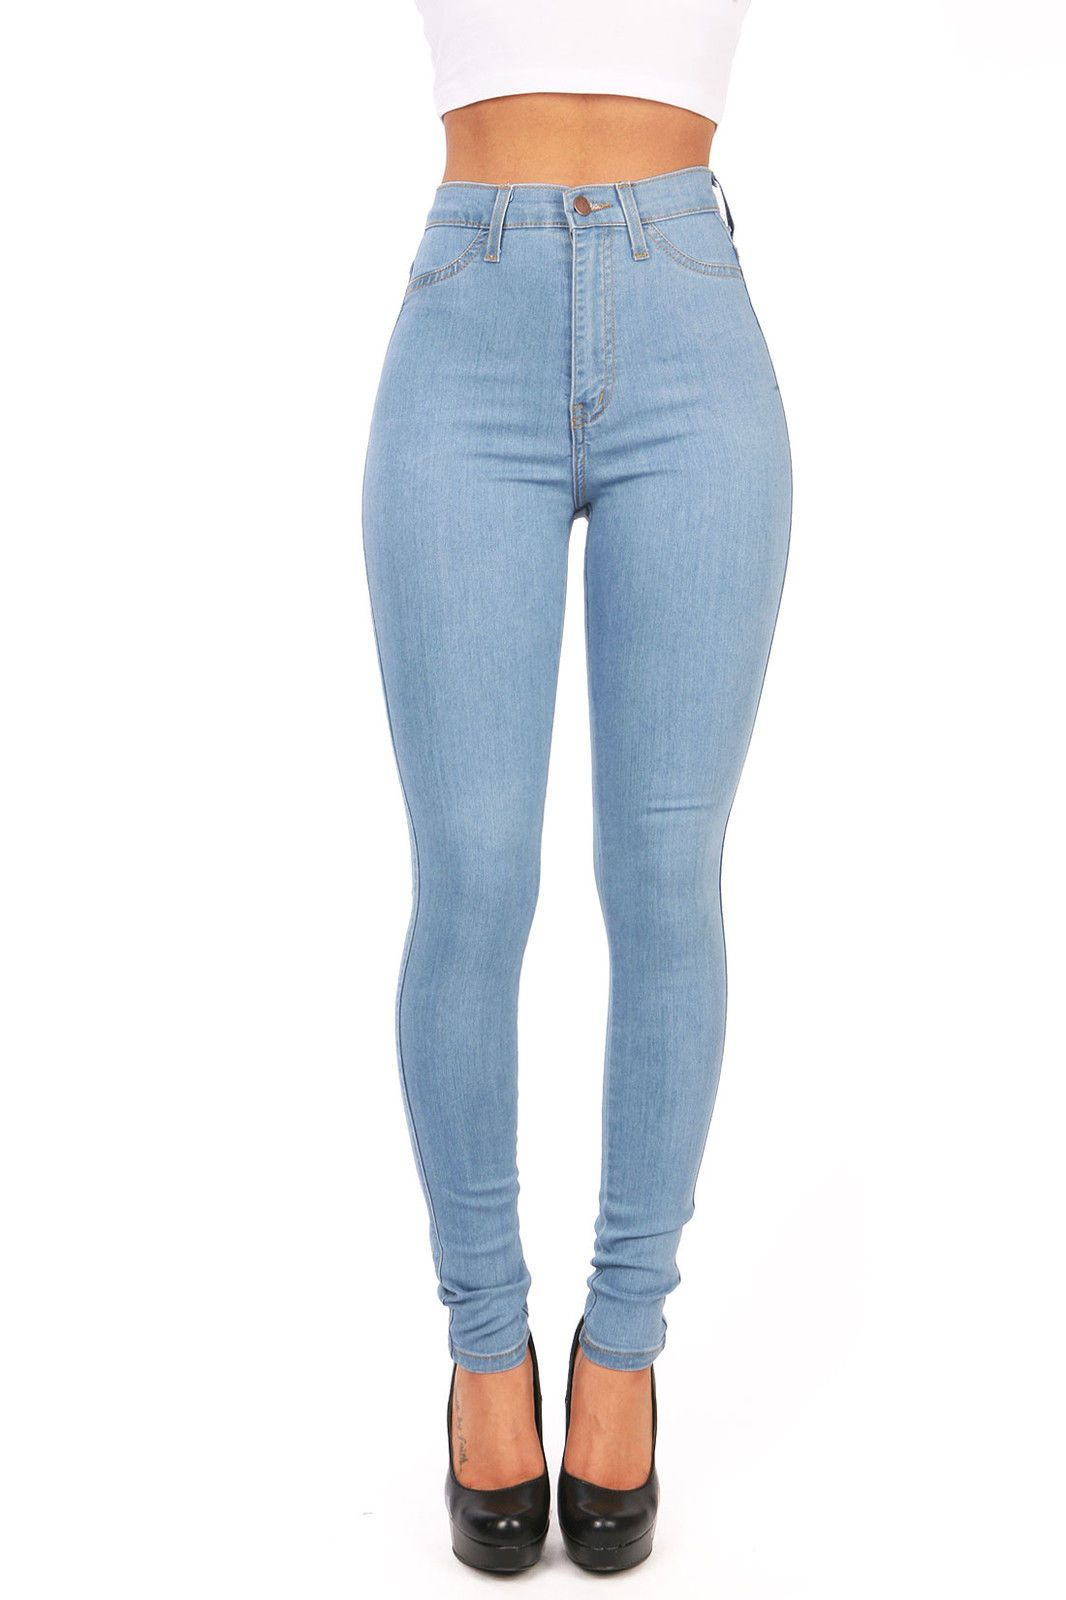 Women/'s Denim Light Wash Faded Blue High Waist Hot Pants Ladies Fitted Shorts